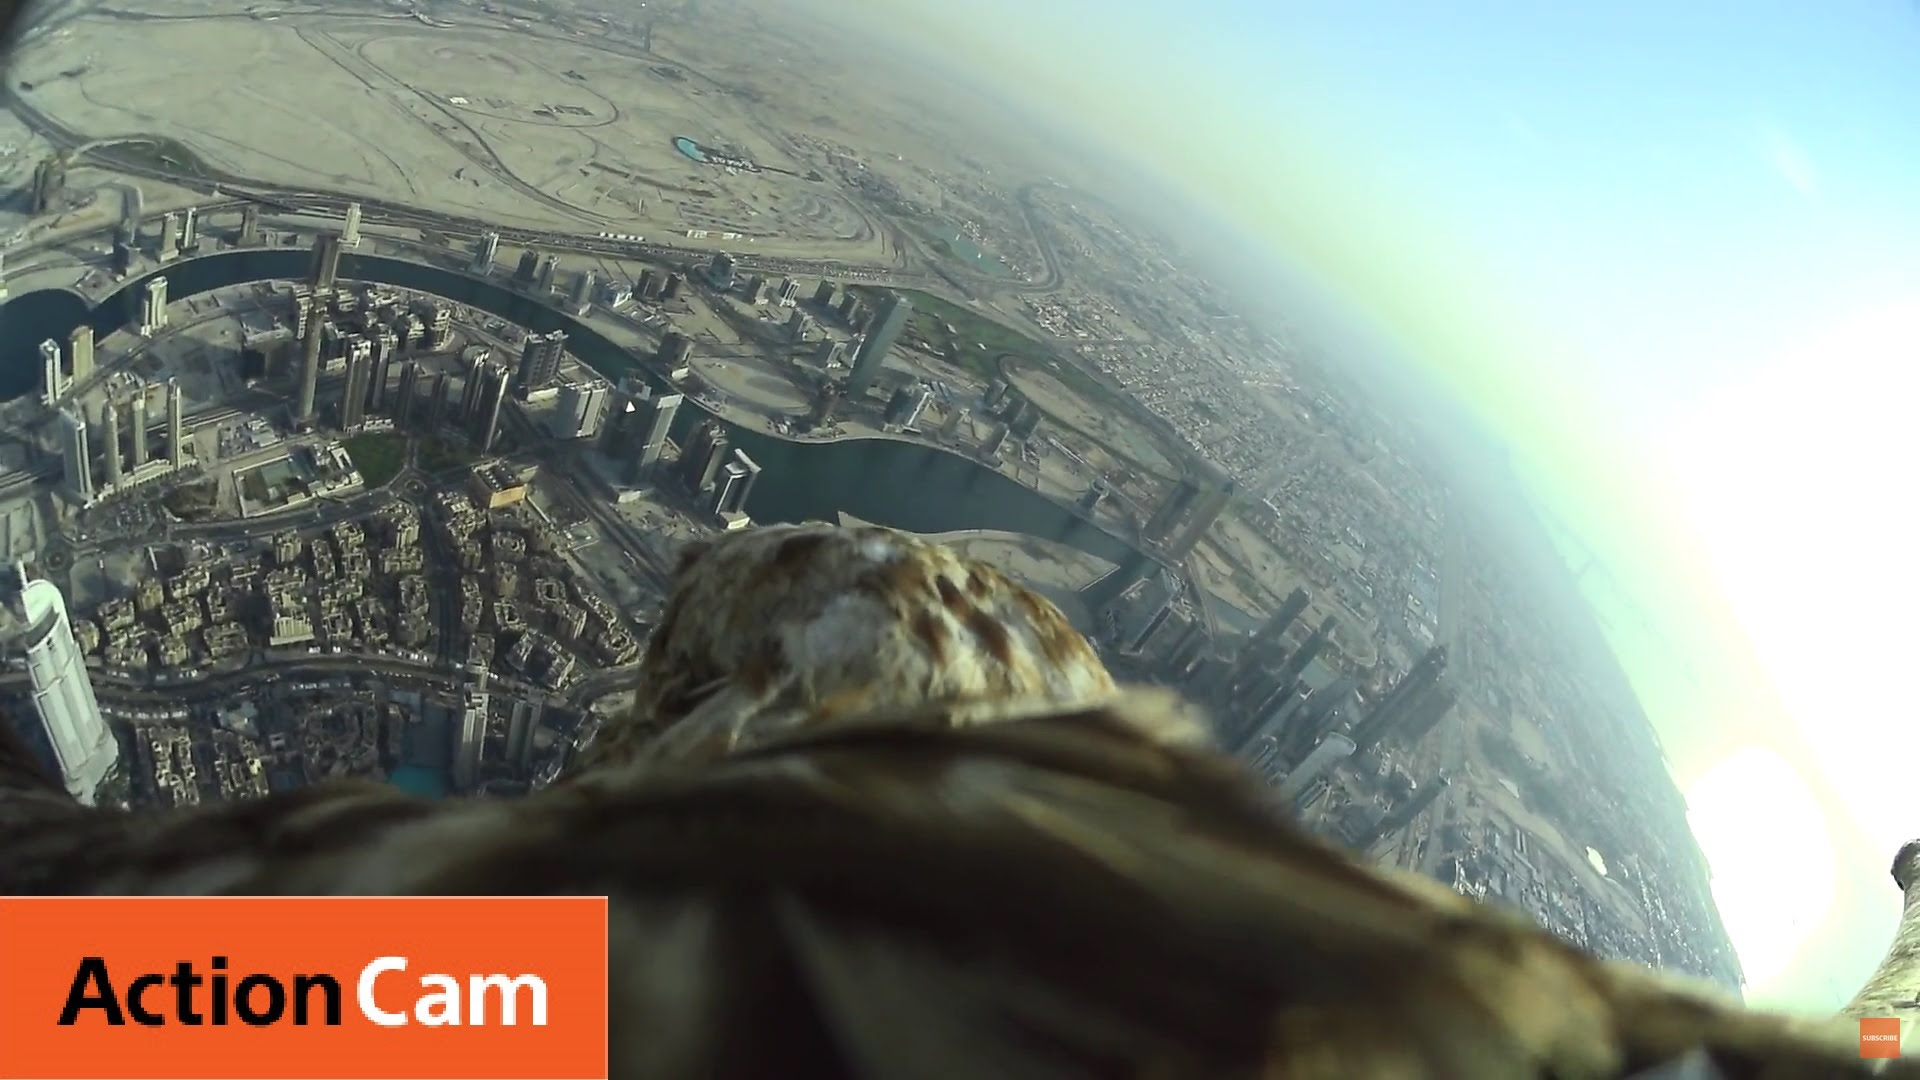 Action Cam | The World Record Flight over the Burj Khalifa Tower | Sony